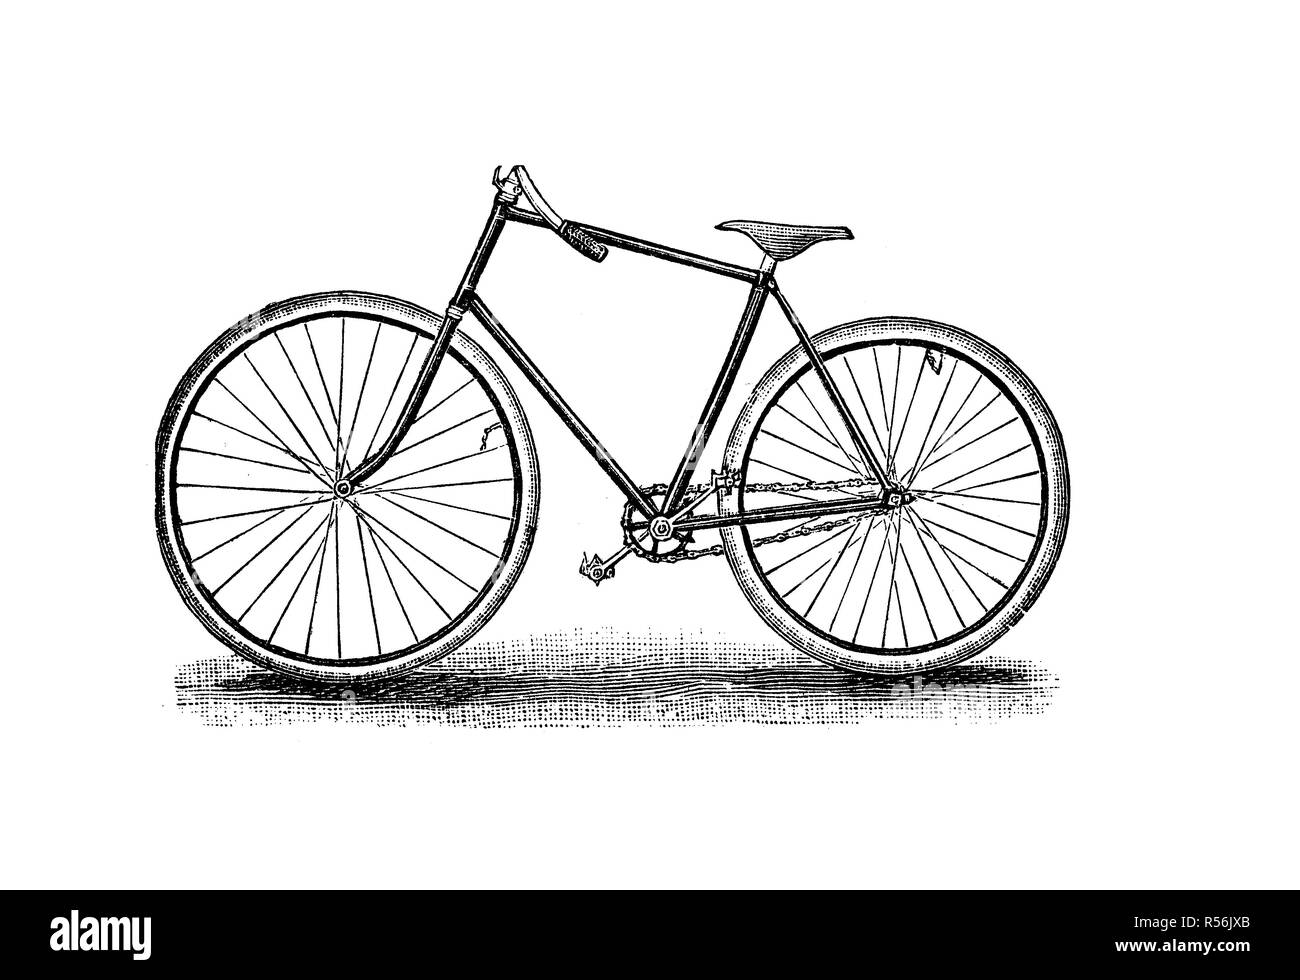 Velocipede, bicycle, 19th century and earlier, rover, 1880, woodcut, Germany - Stock Image